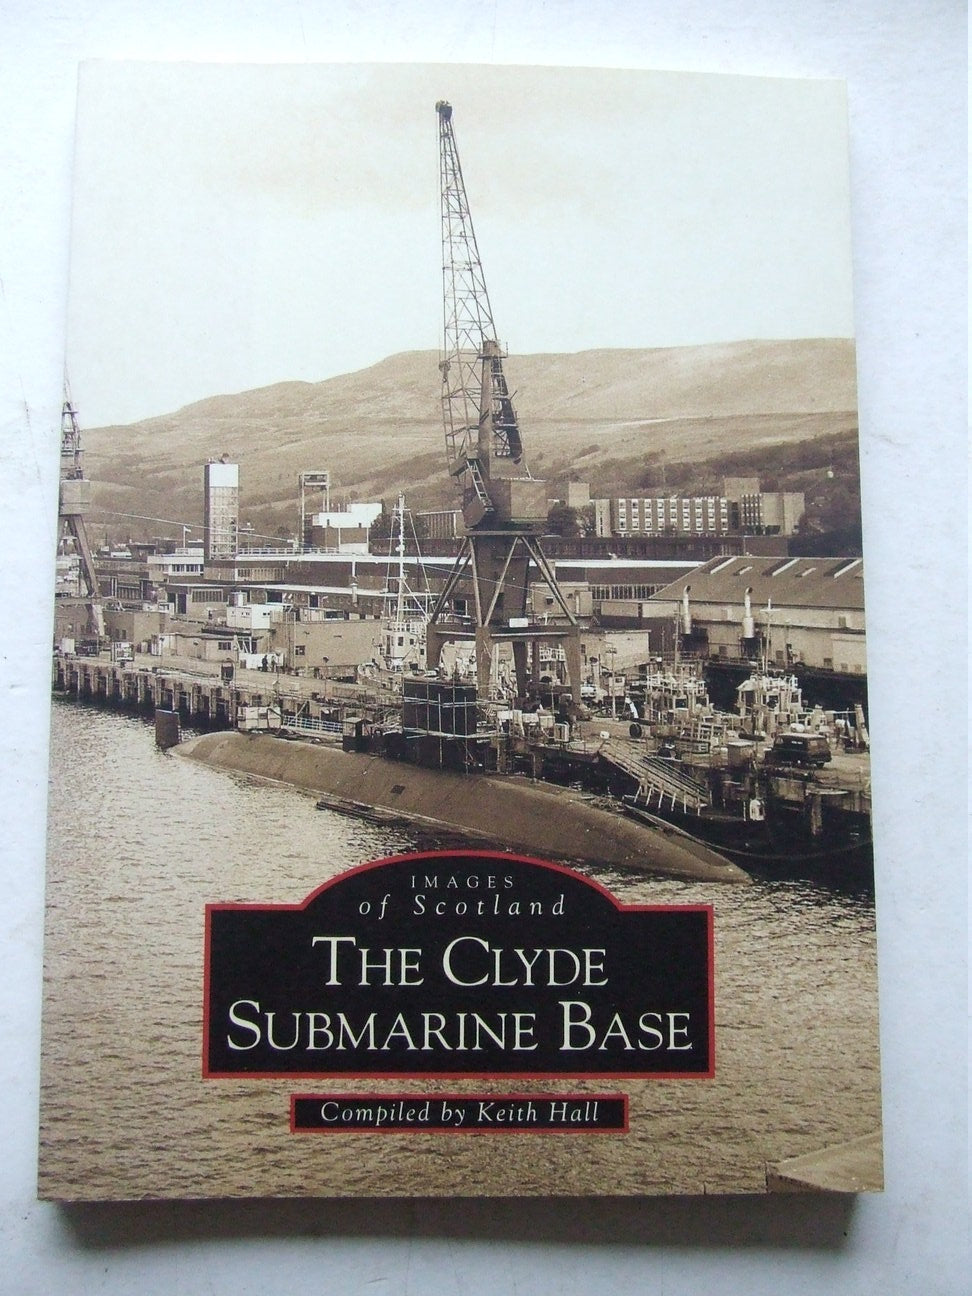 The Clyde Submarine Base